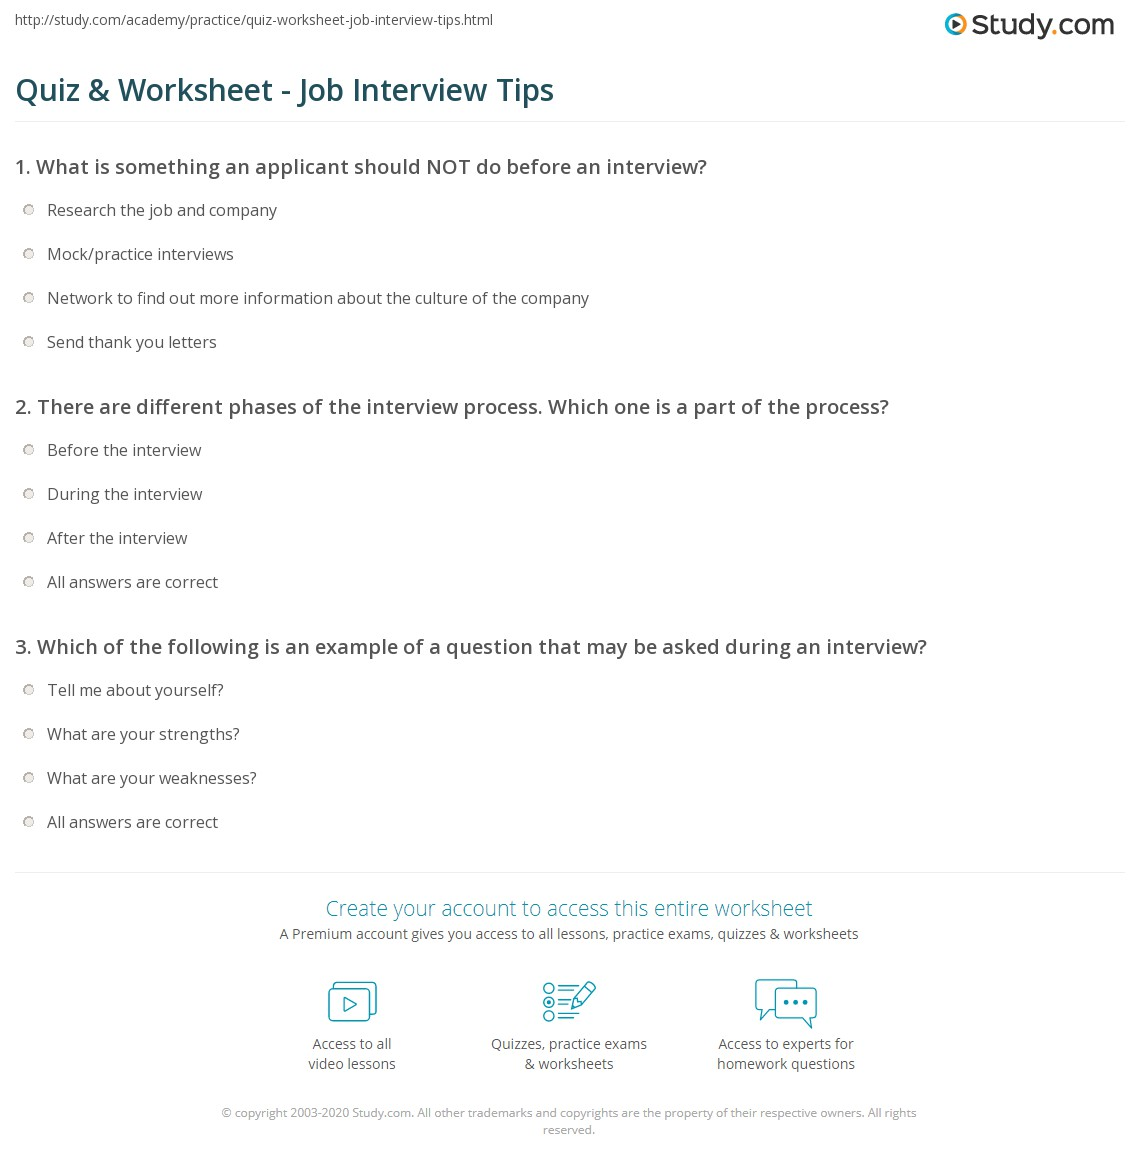 quiz worksheet job interview tips com print job interview tips questions thank you letters worksheet